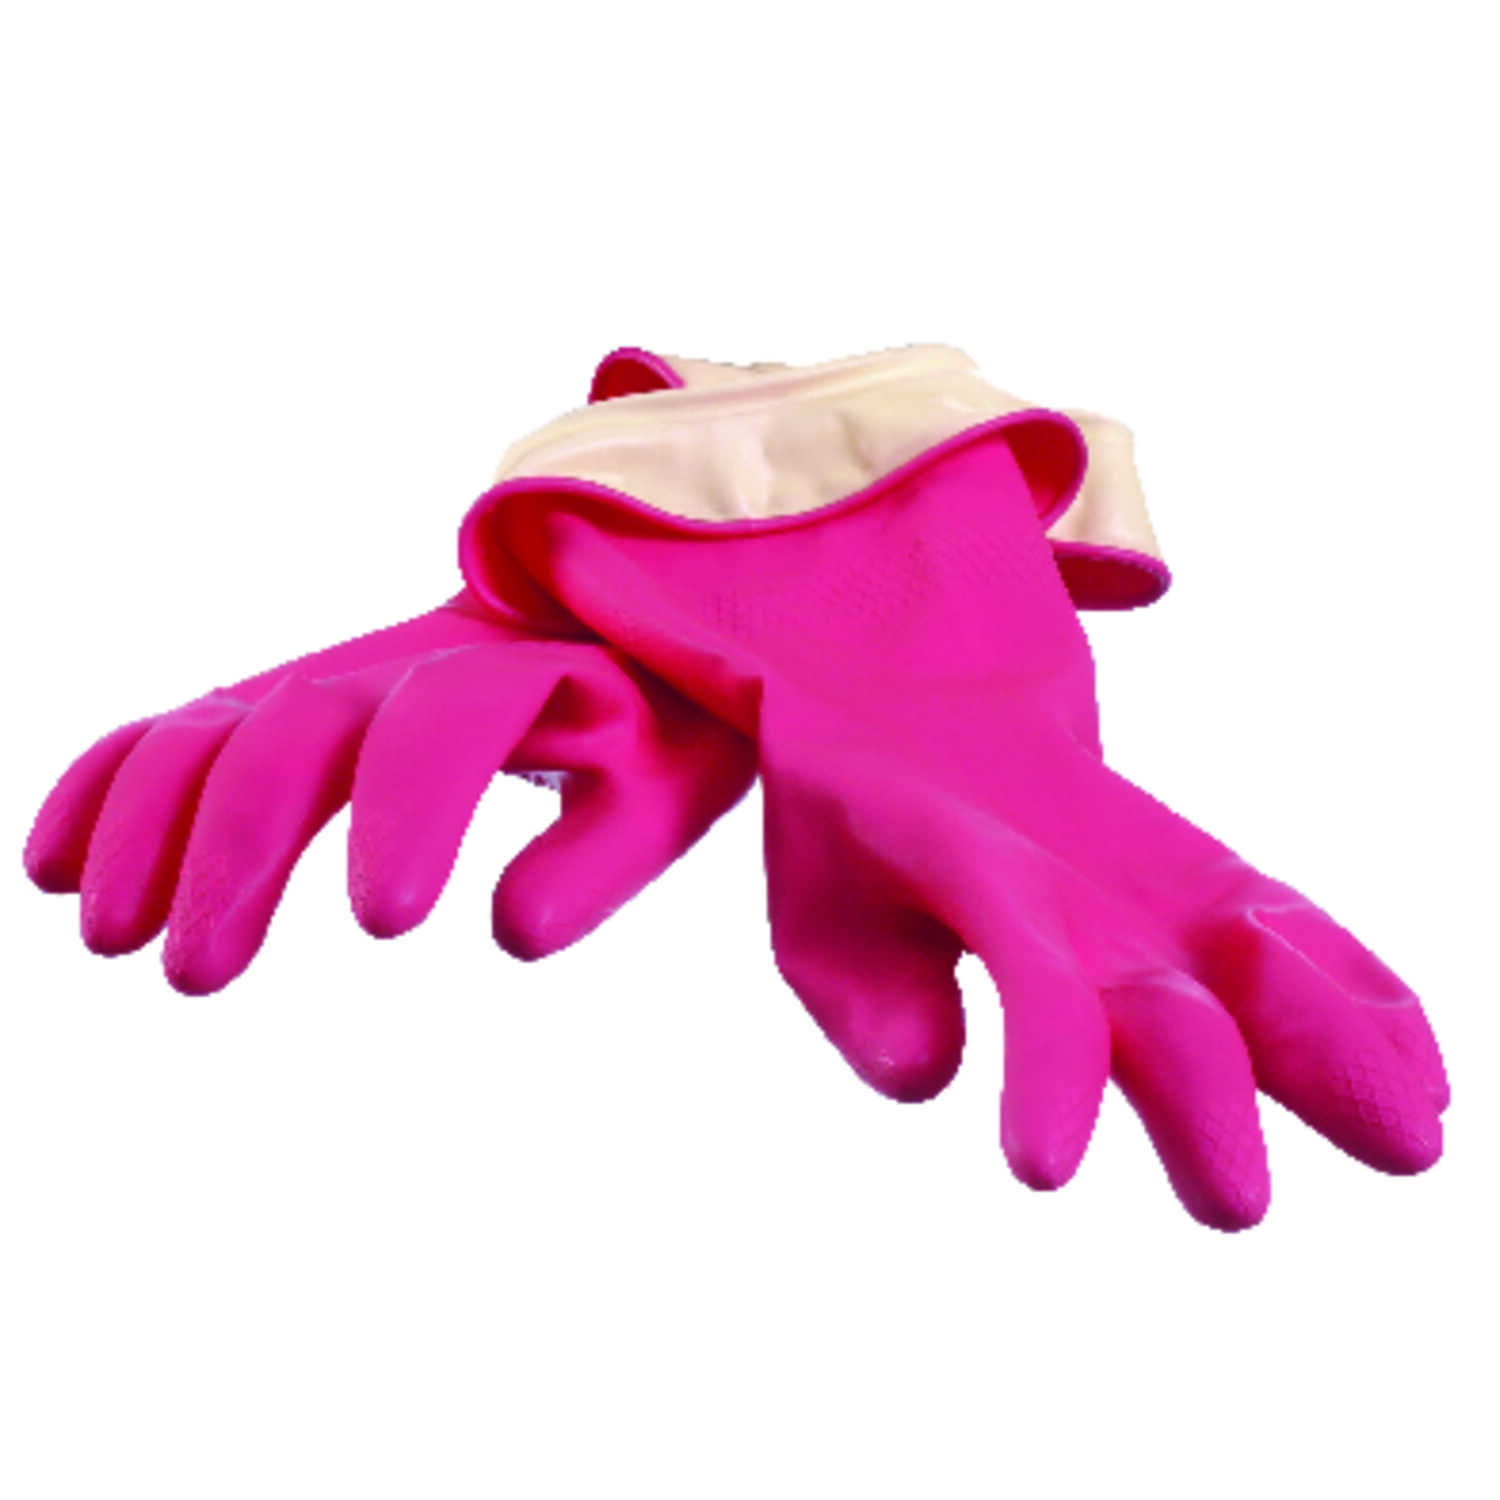 Casabella  Latex  Gloves  S  Pink  1 pk